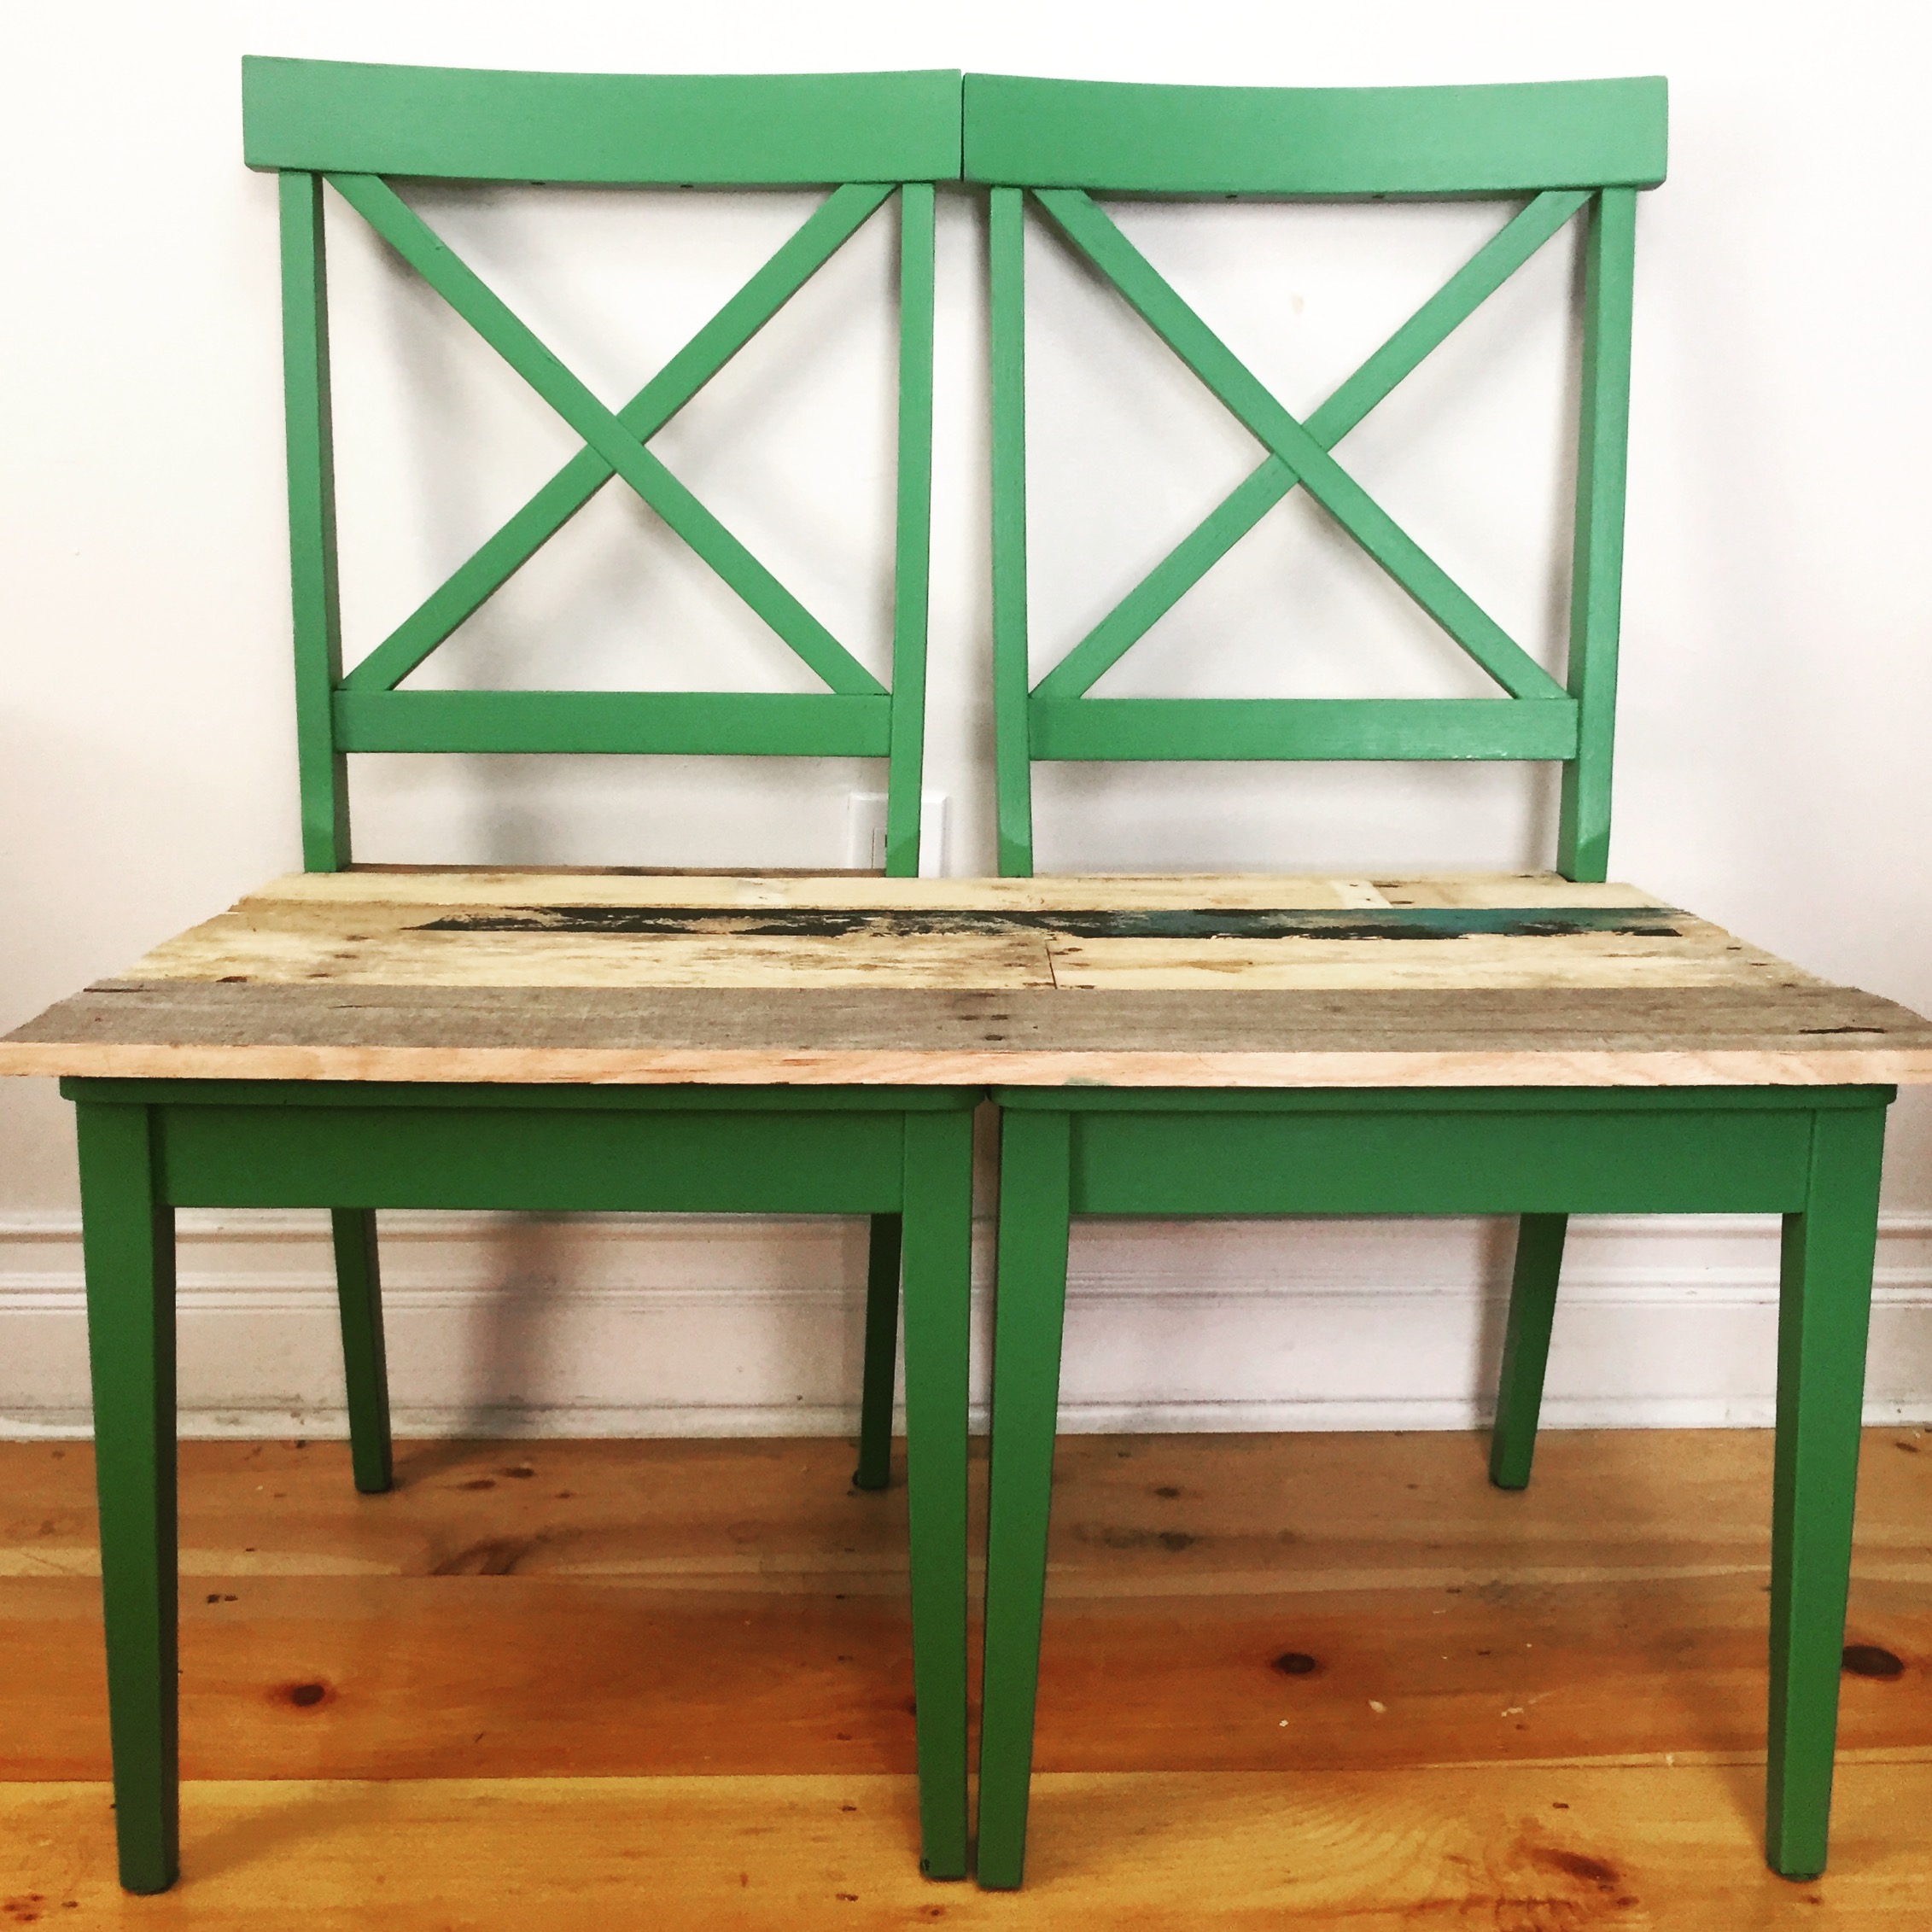 Chair pallet bench upcycle MyFixitUpLife pink Chair pallet bench upcycle MyFixitUpLife green  sc 1 st  MyFixitUpLife & Hers u0026 His pallet ideas: We upcycled these old chairs into his/hers ...